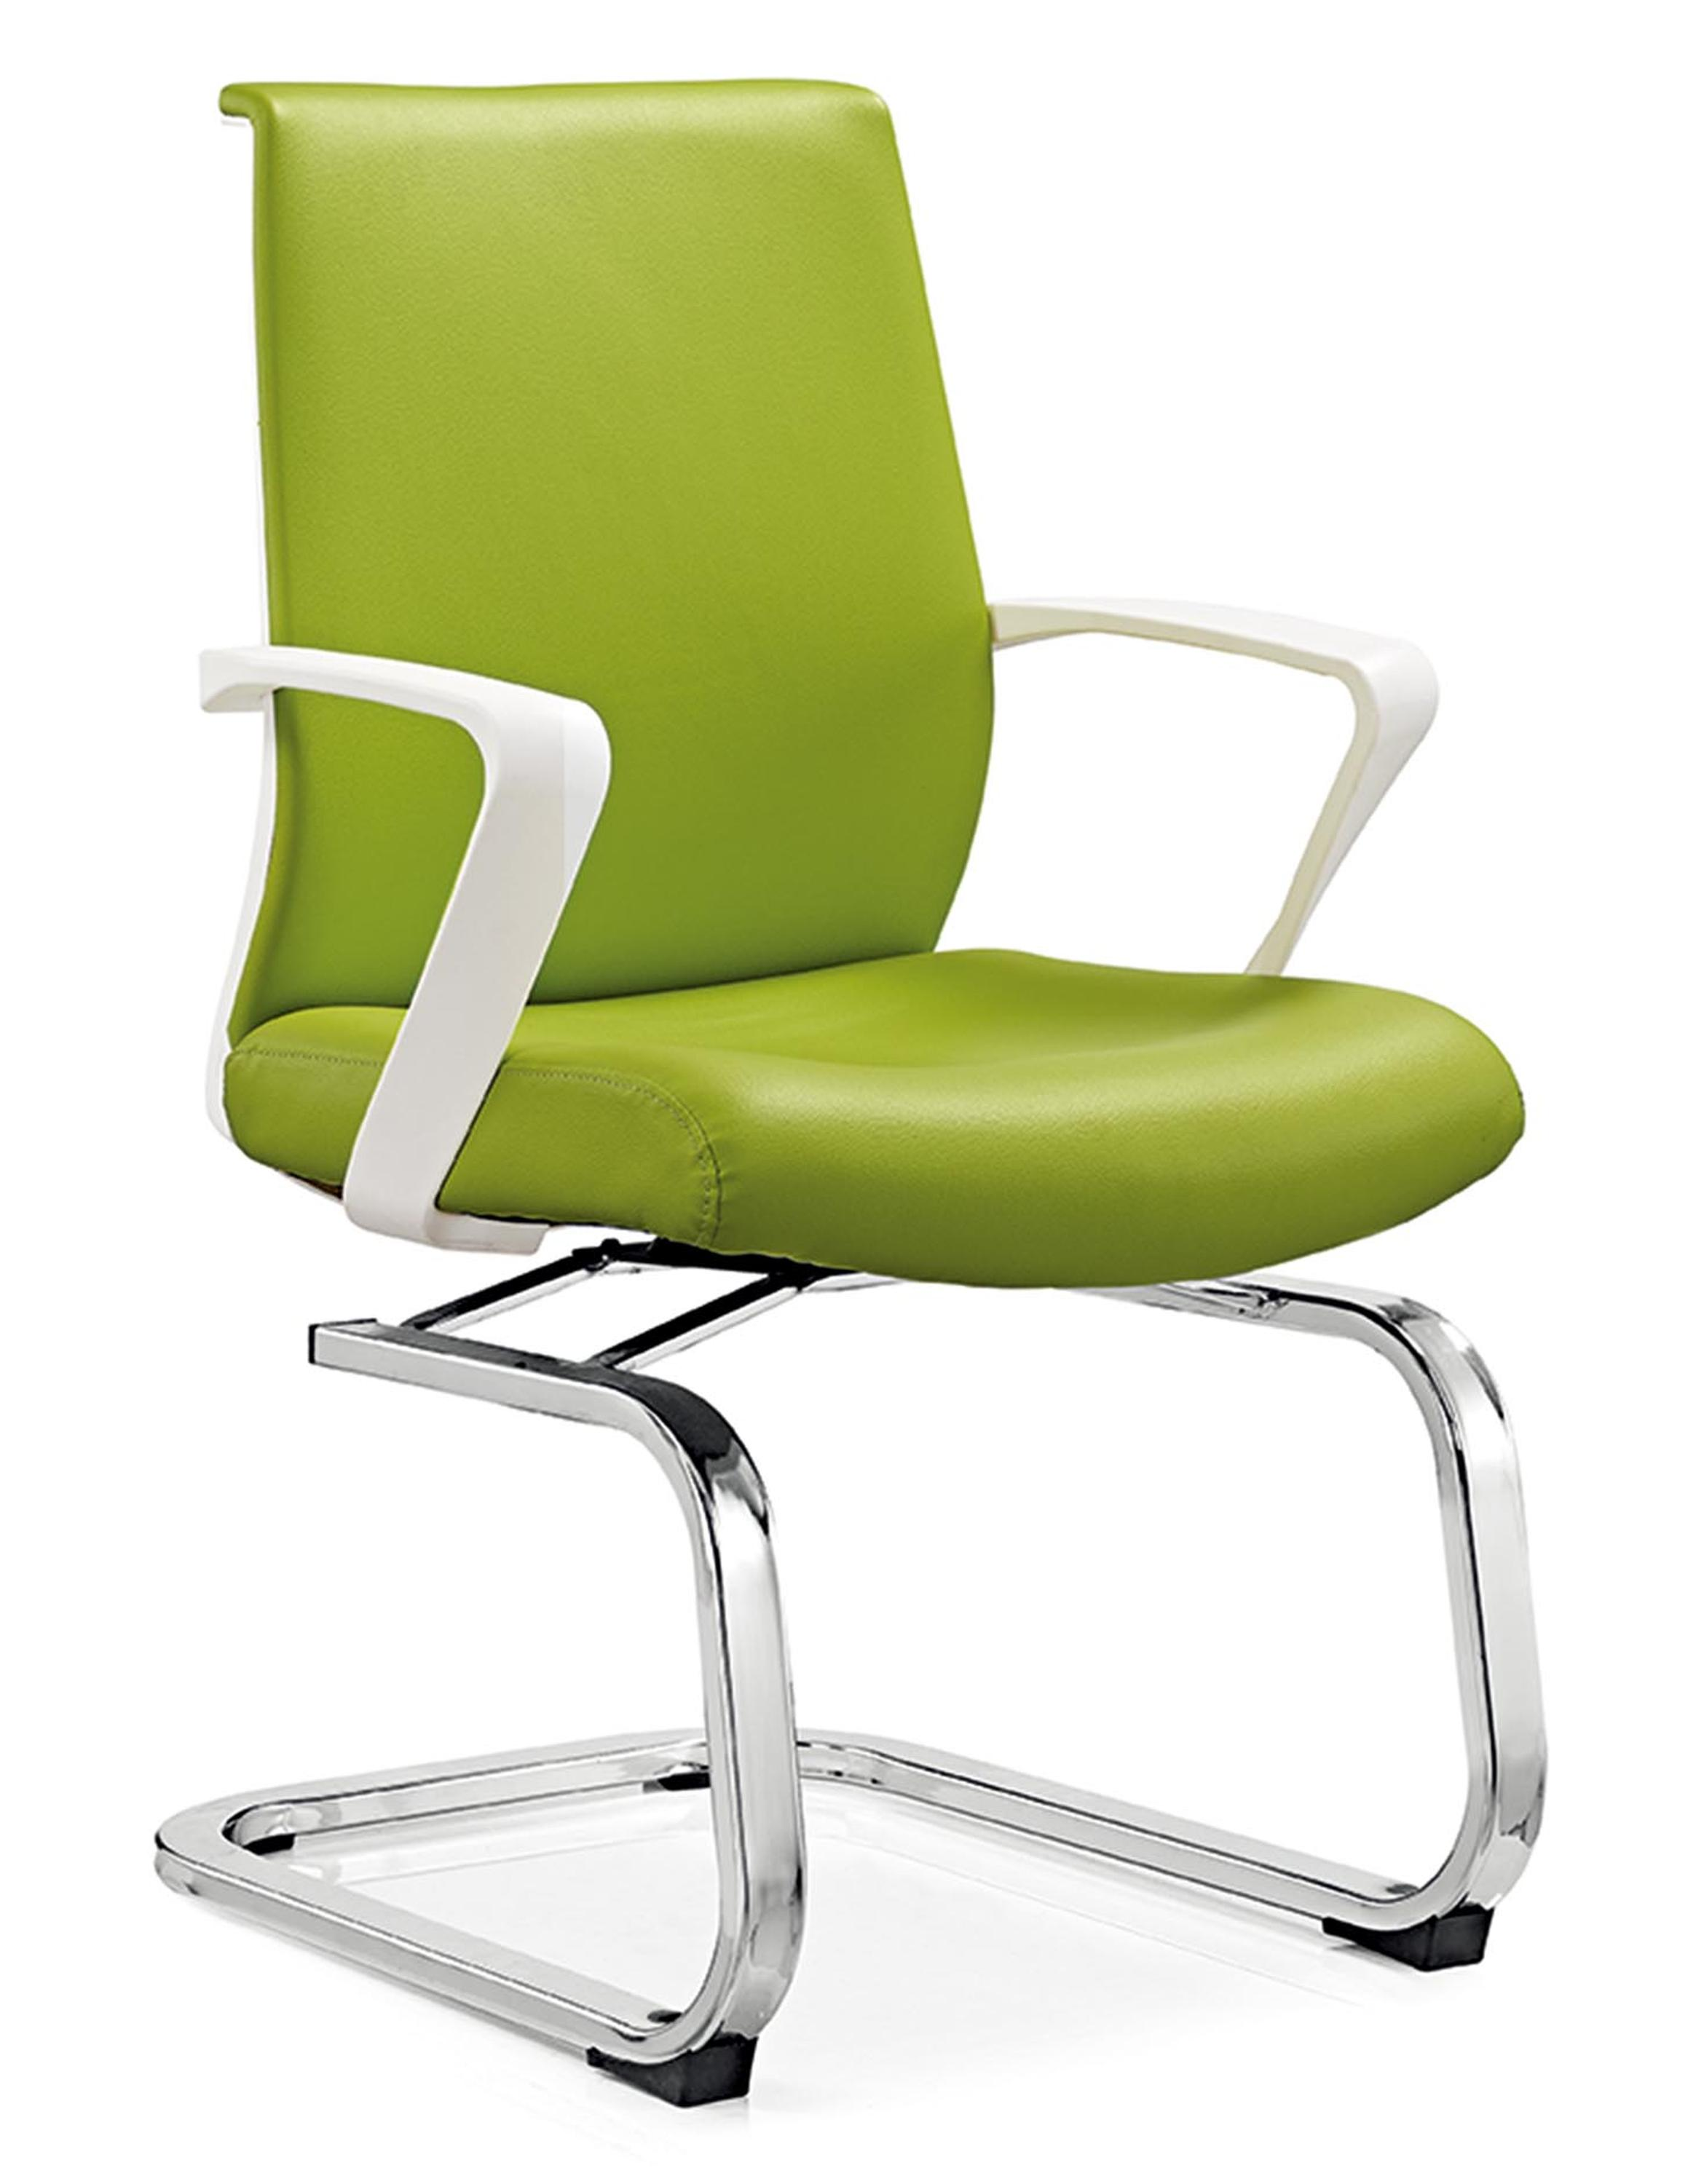 Working Chair Comfy Non Rolling Office Chair Green Working Chairs Without Wheels Buy Comfy Chair Non Rolling Office Chair Green Chairs Without Wheels Product On